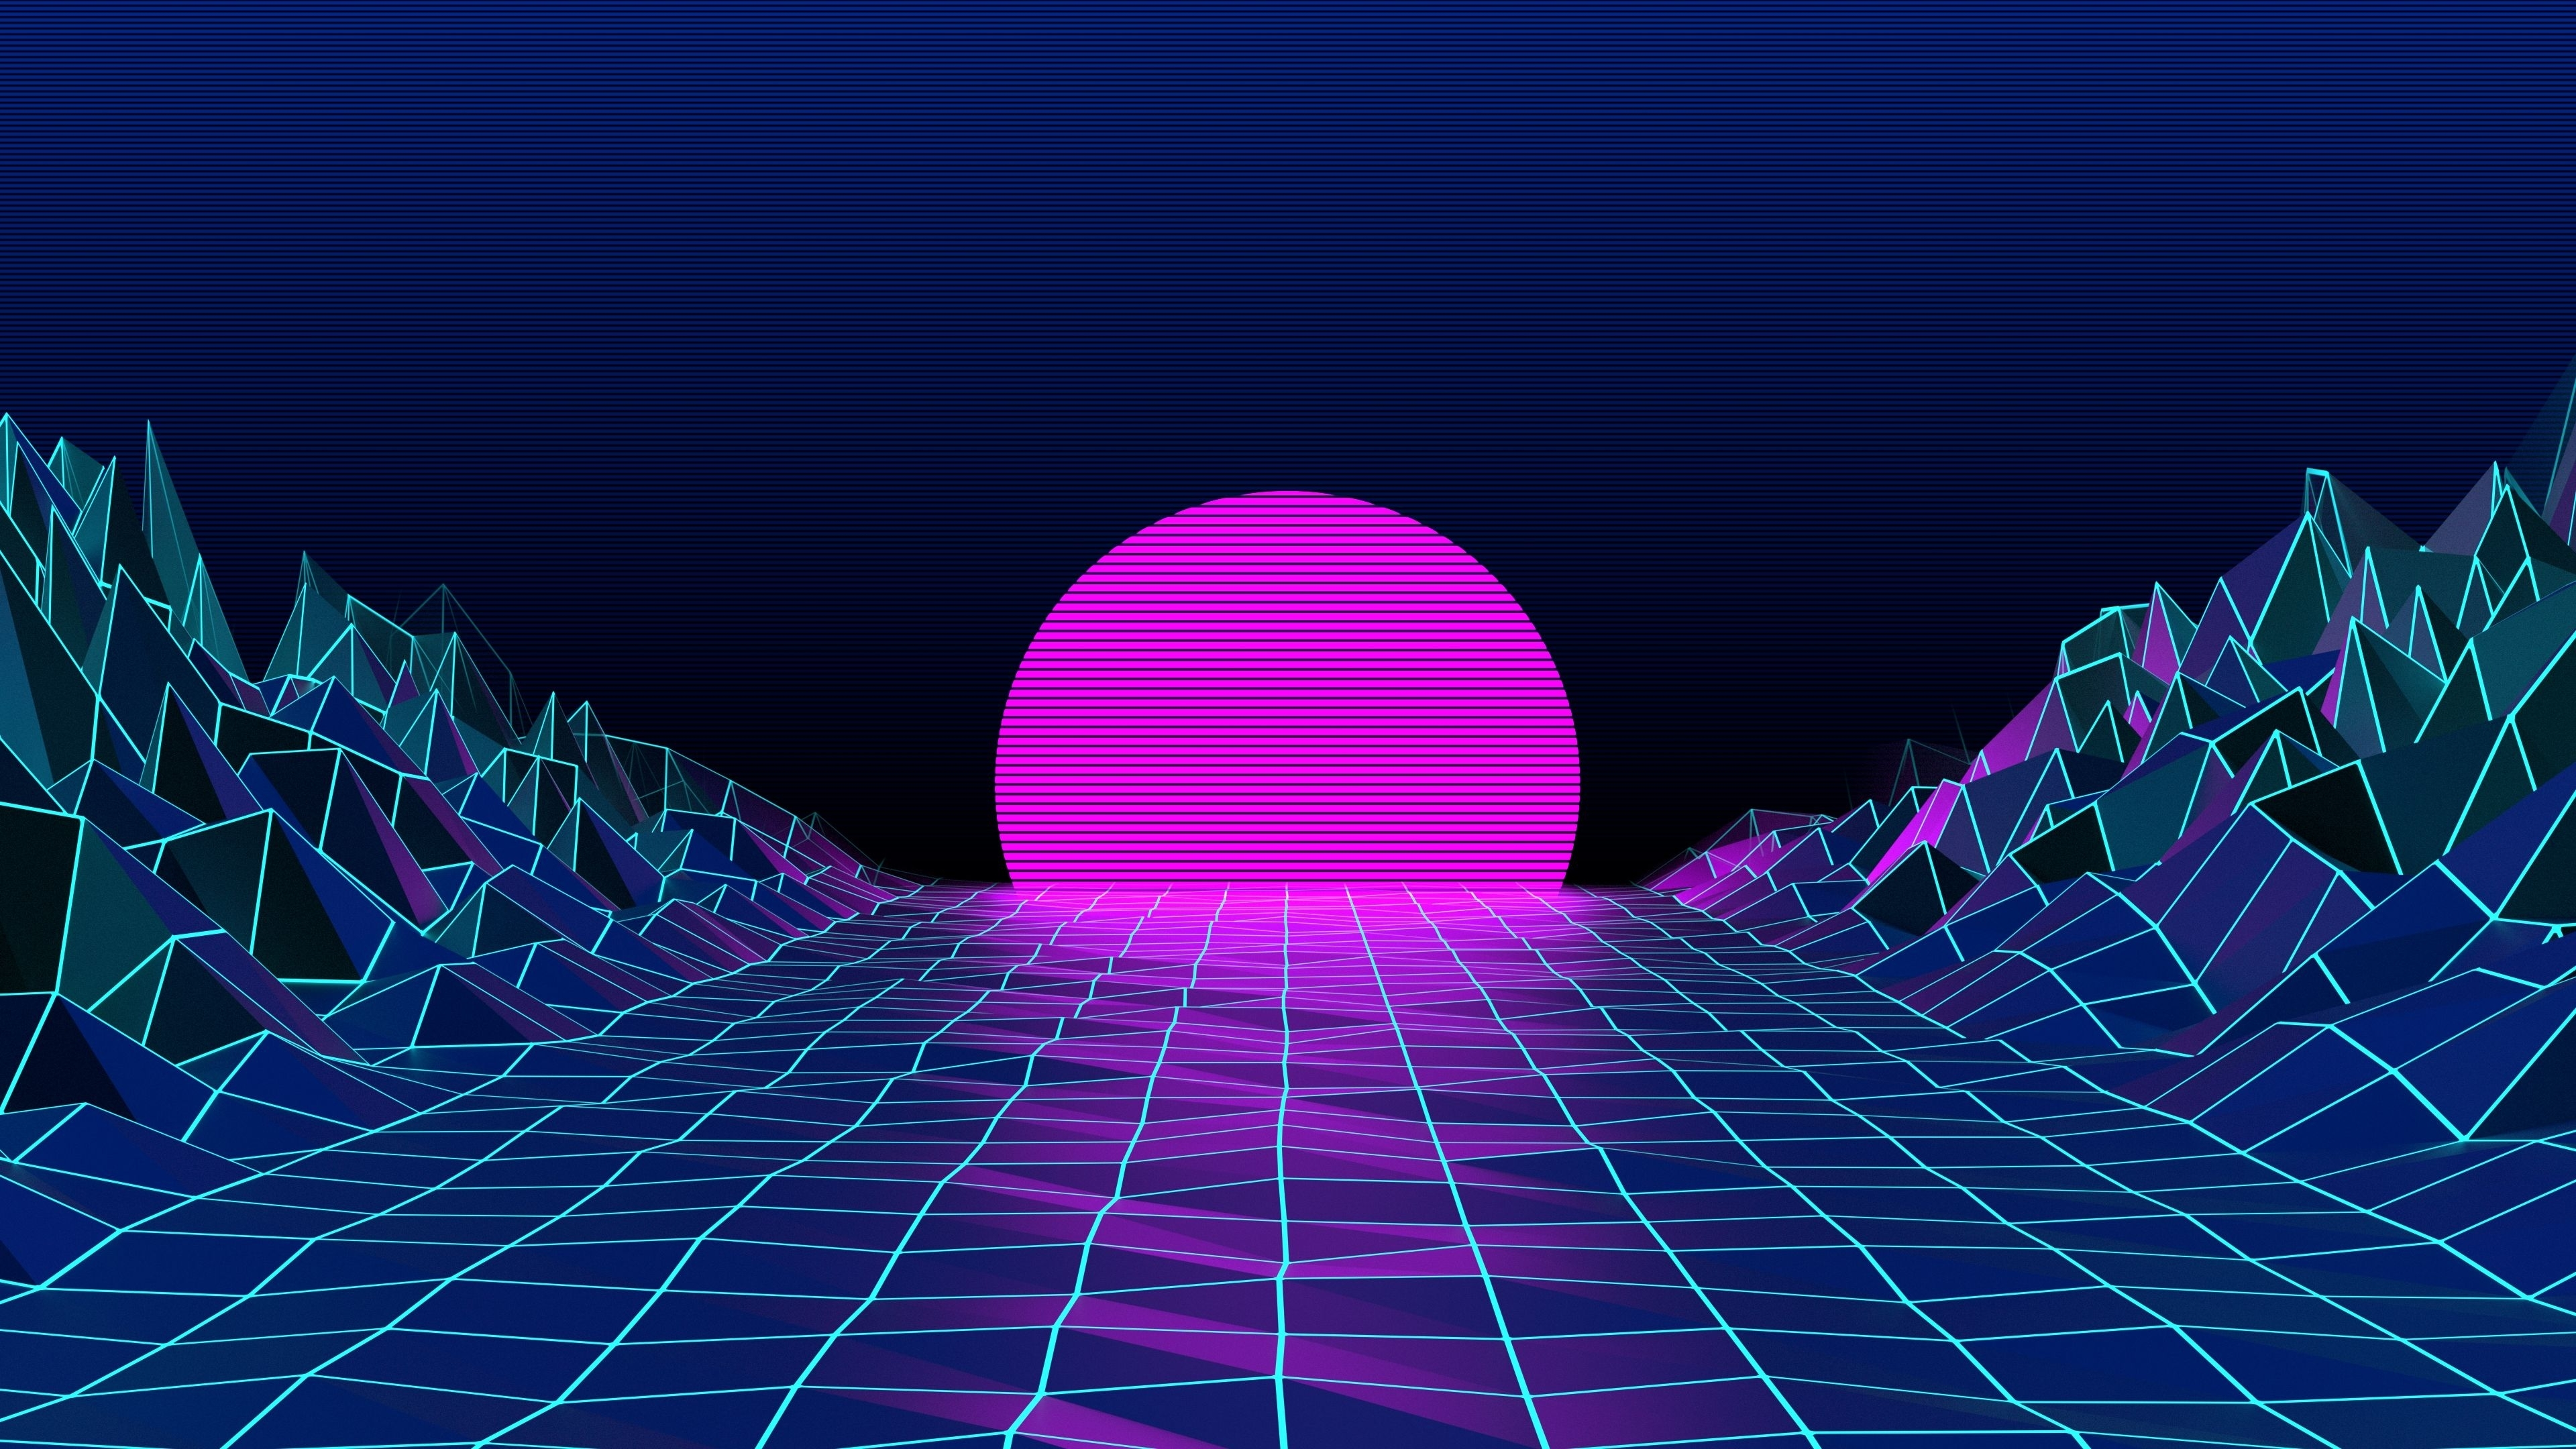 3840x2160] [1920x1080] retro 80's wallpaper /r/wallpapers | reddit